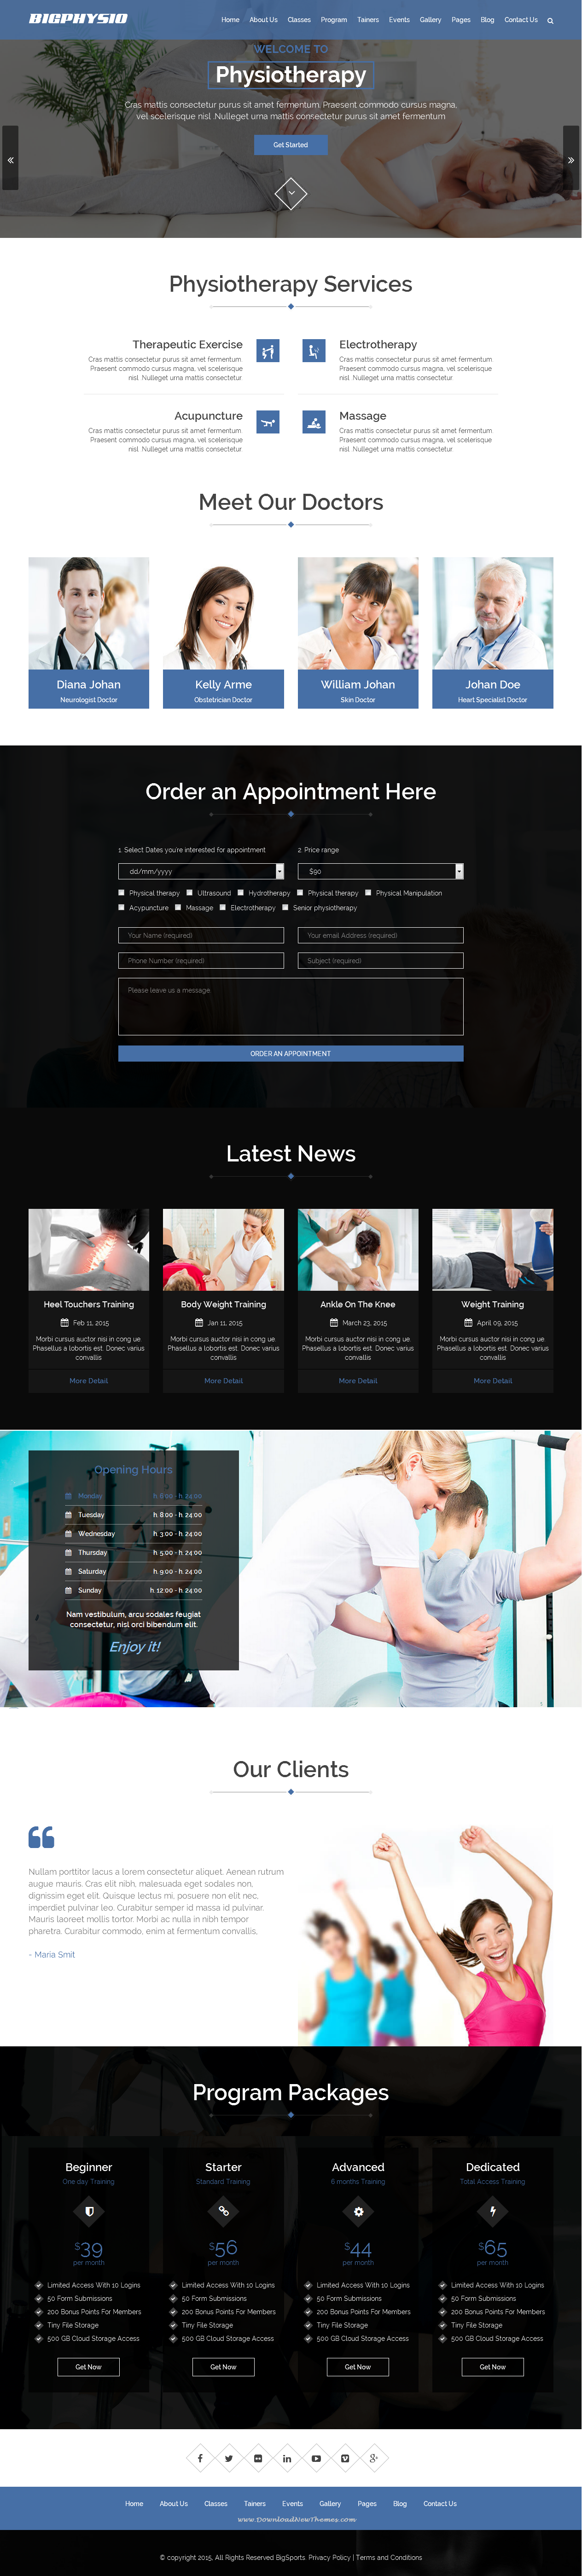 Multipurpose Physiotherapy Website Template It Comes With Ecommerce Design Theme Is Suitable For Websites Tha Ecommerce Design Web Design News Website Design